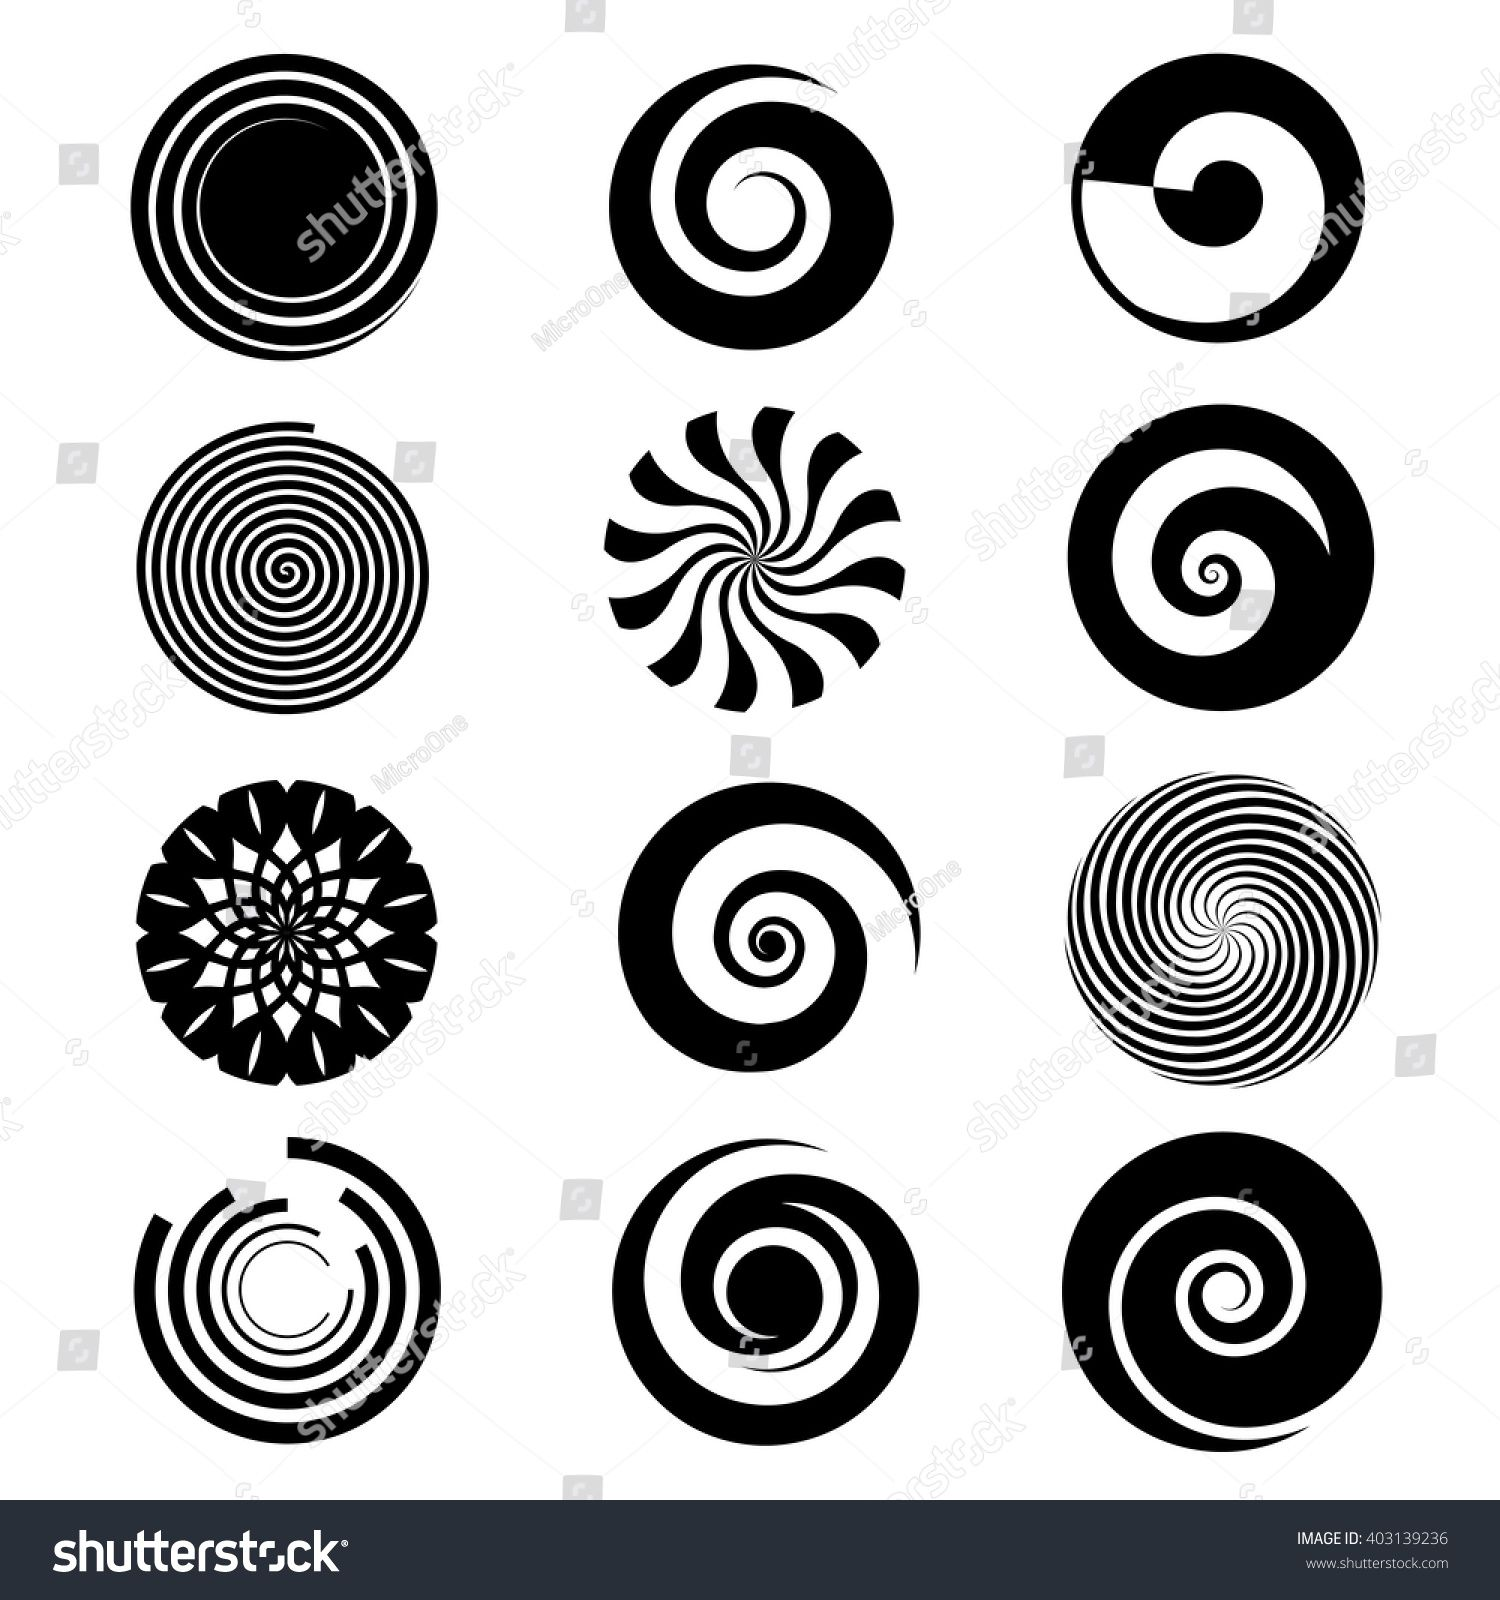 Spiral elements vector. Different spirals icons for logo